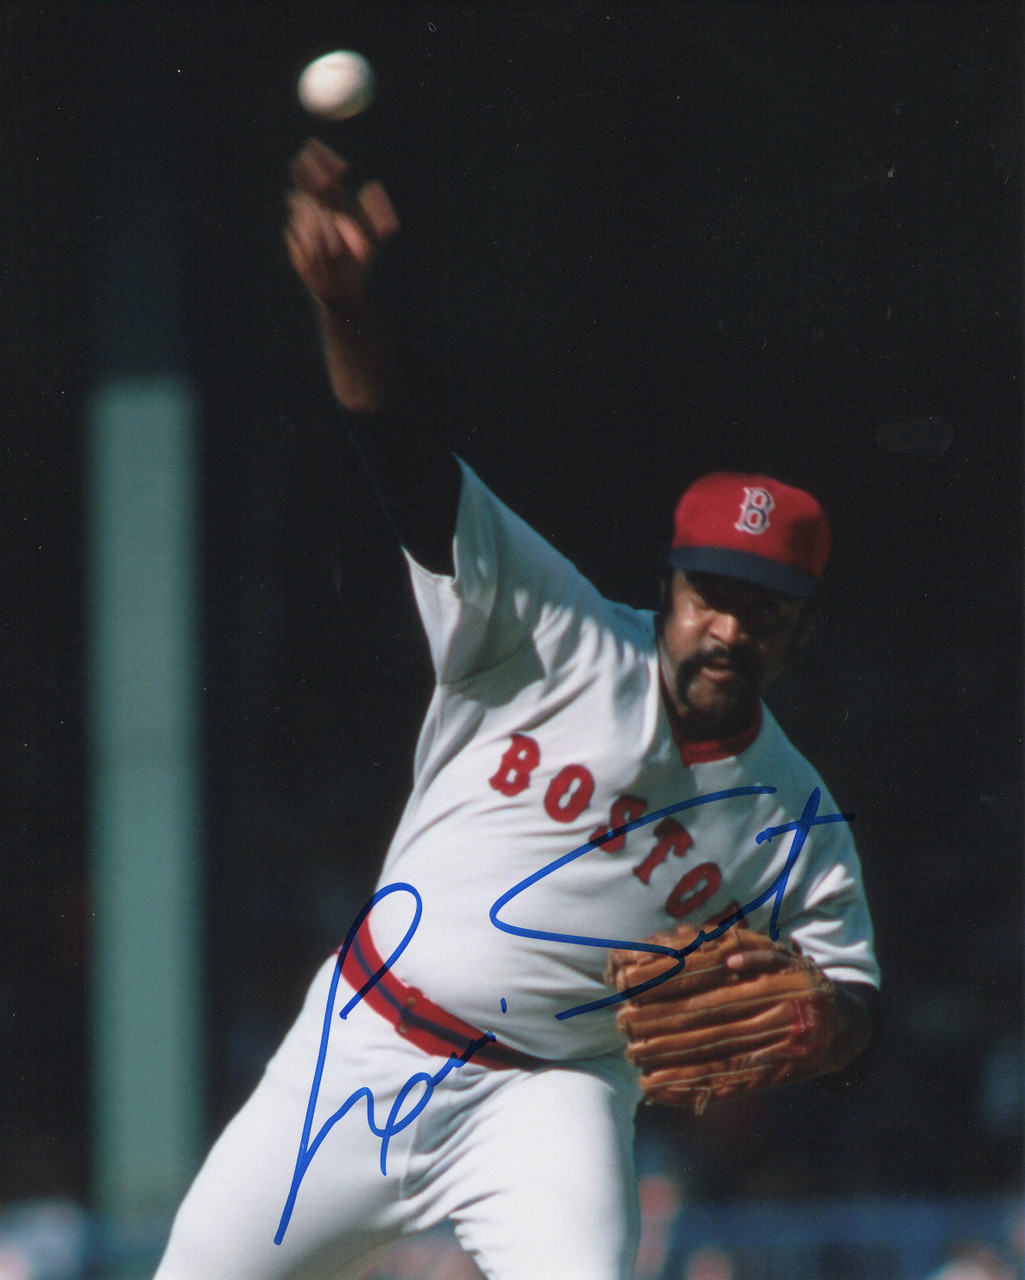 Louis Tiant Boston Red Sox 8x10 Autographed Photo - Certified Authentic